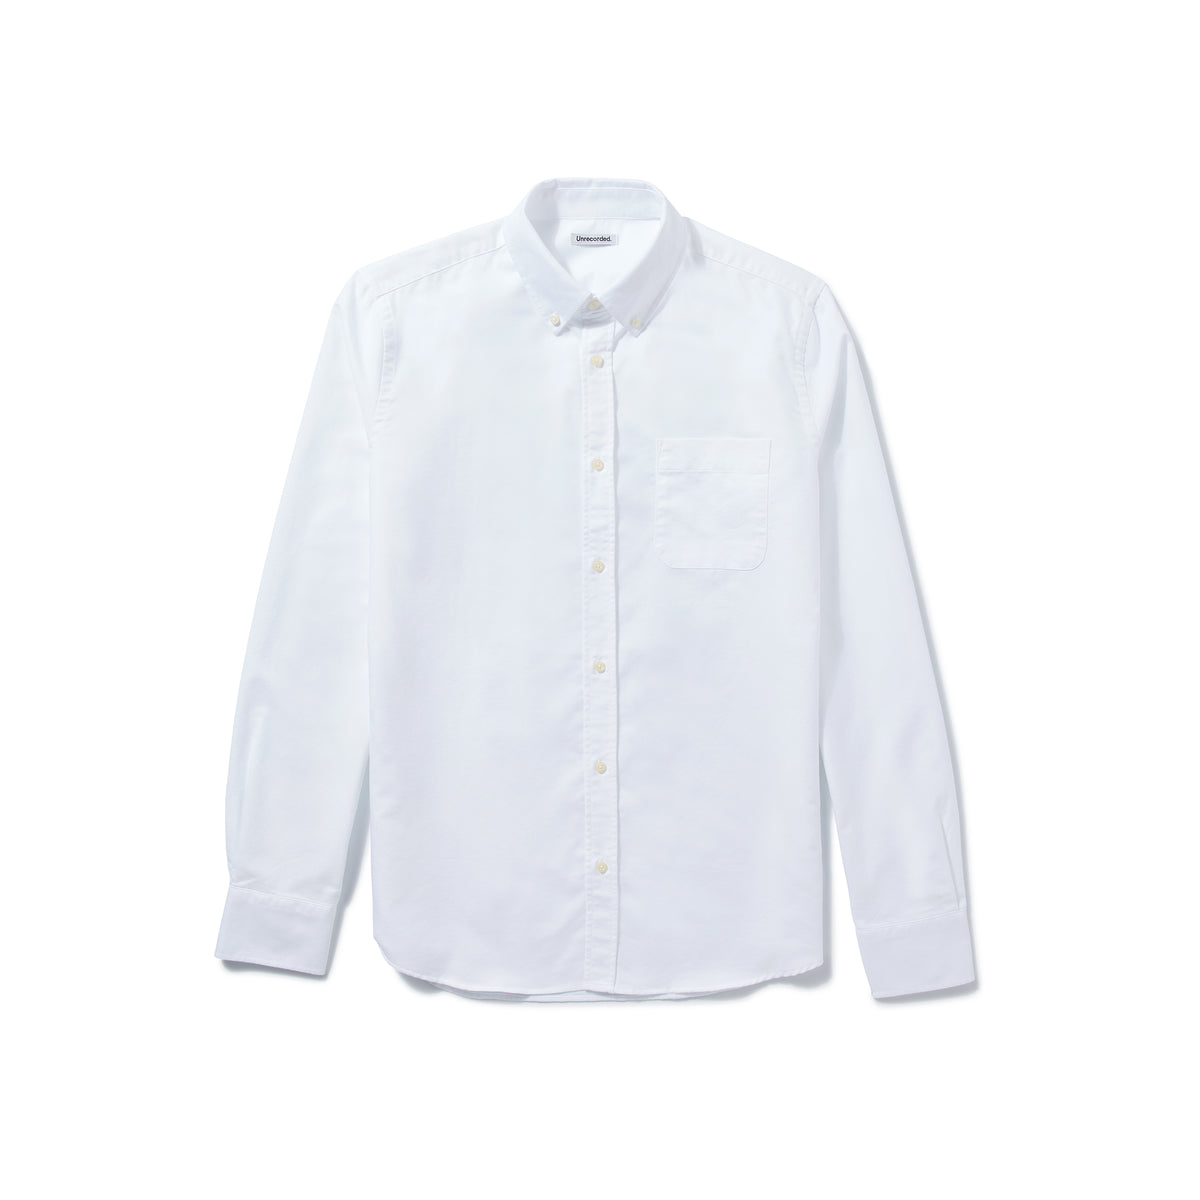 Oxford Shirt White - Unrecorded